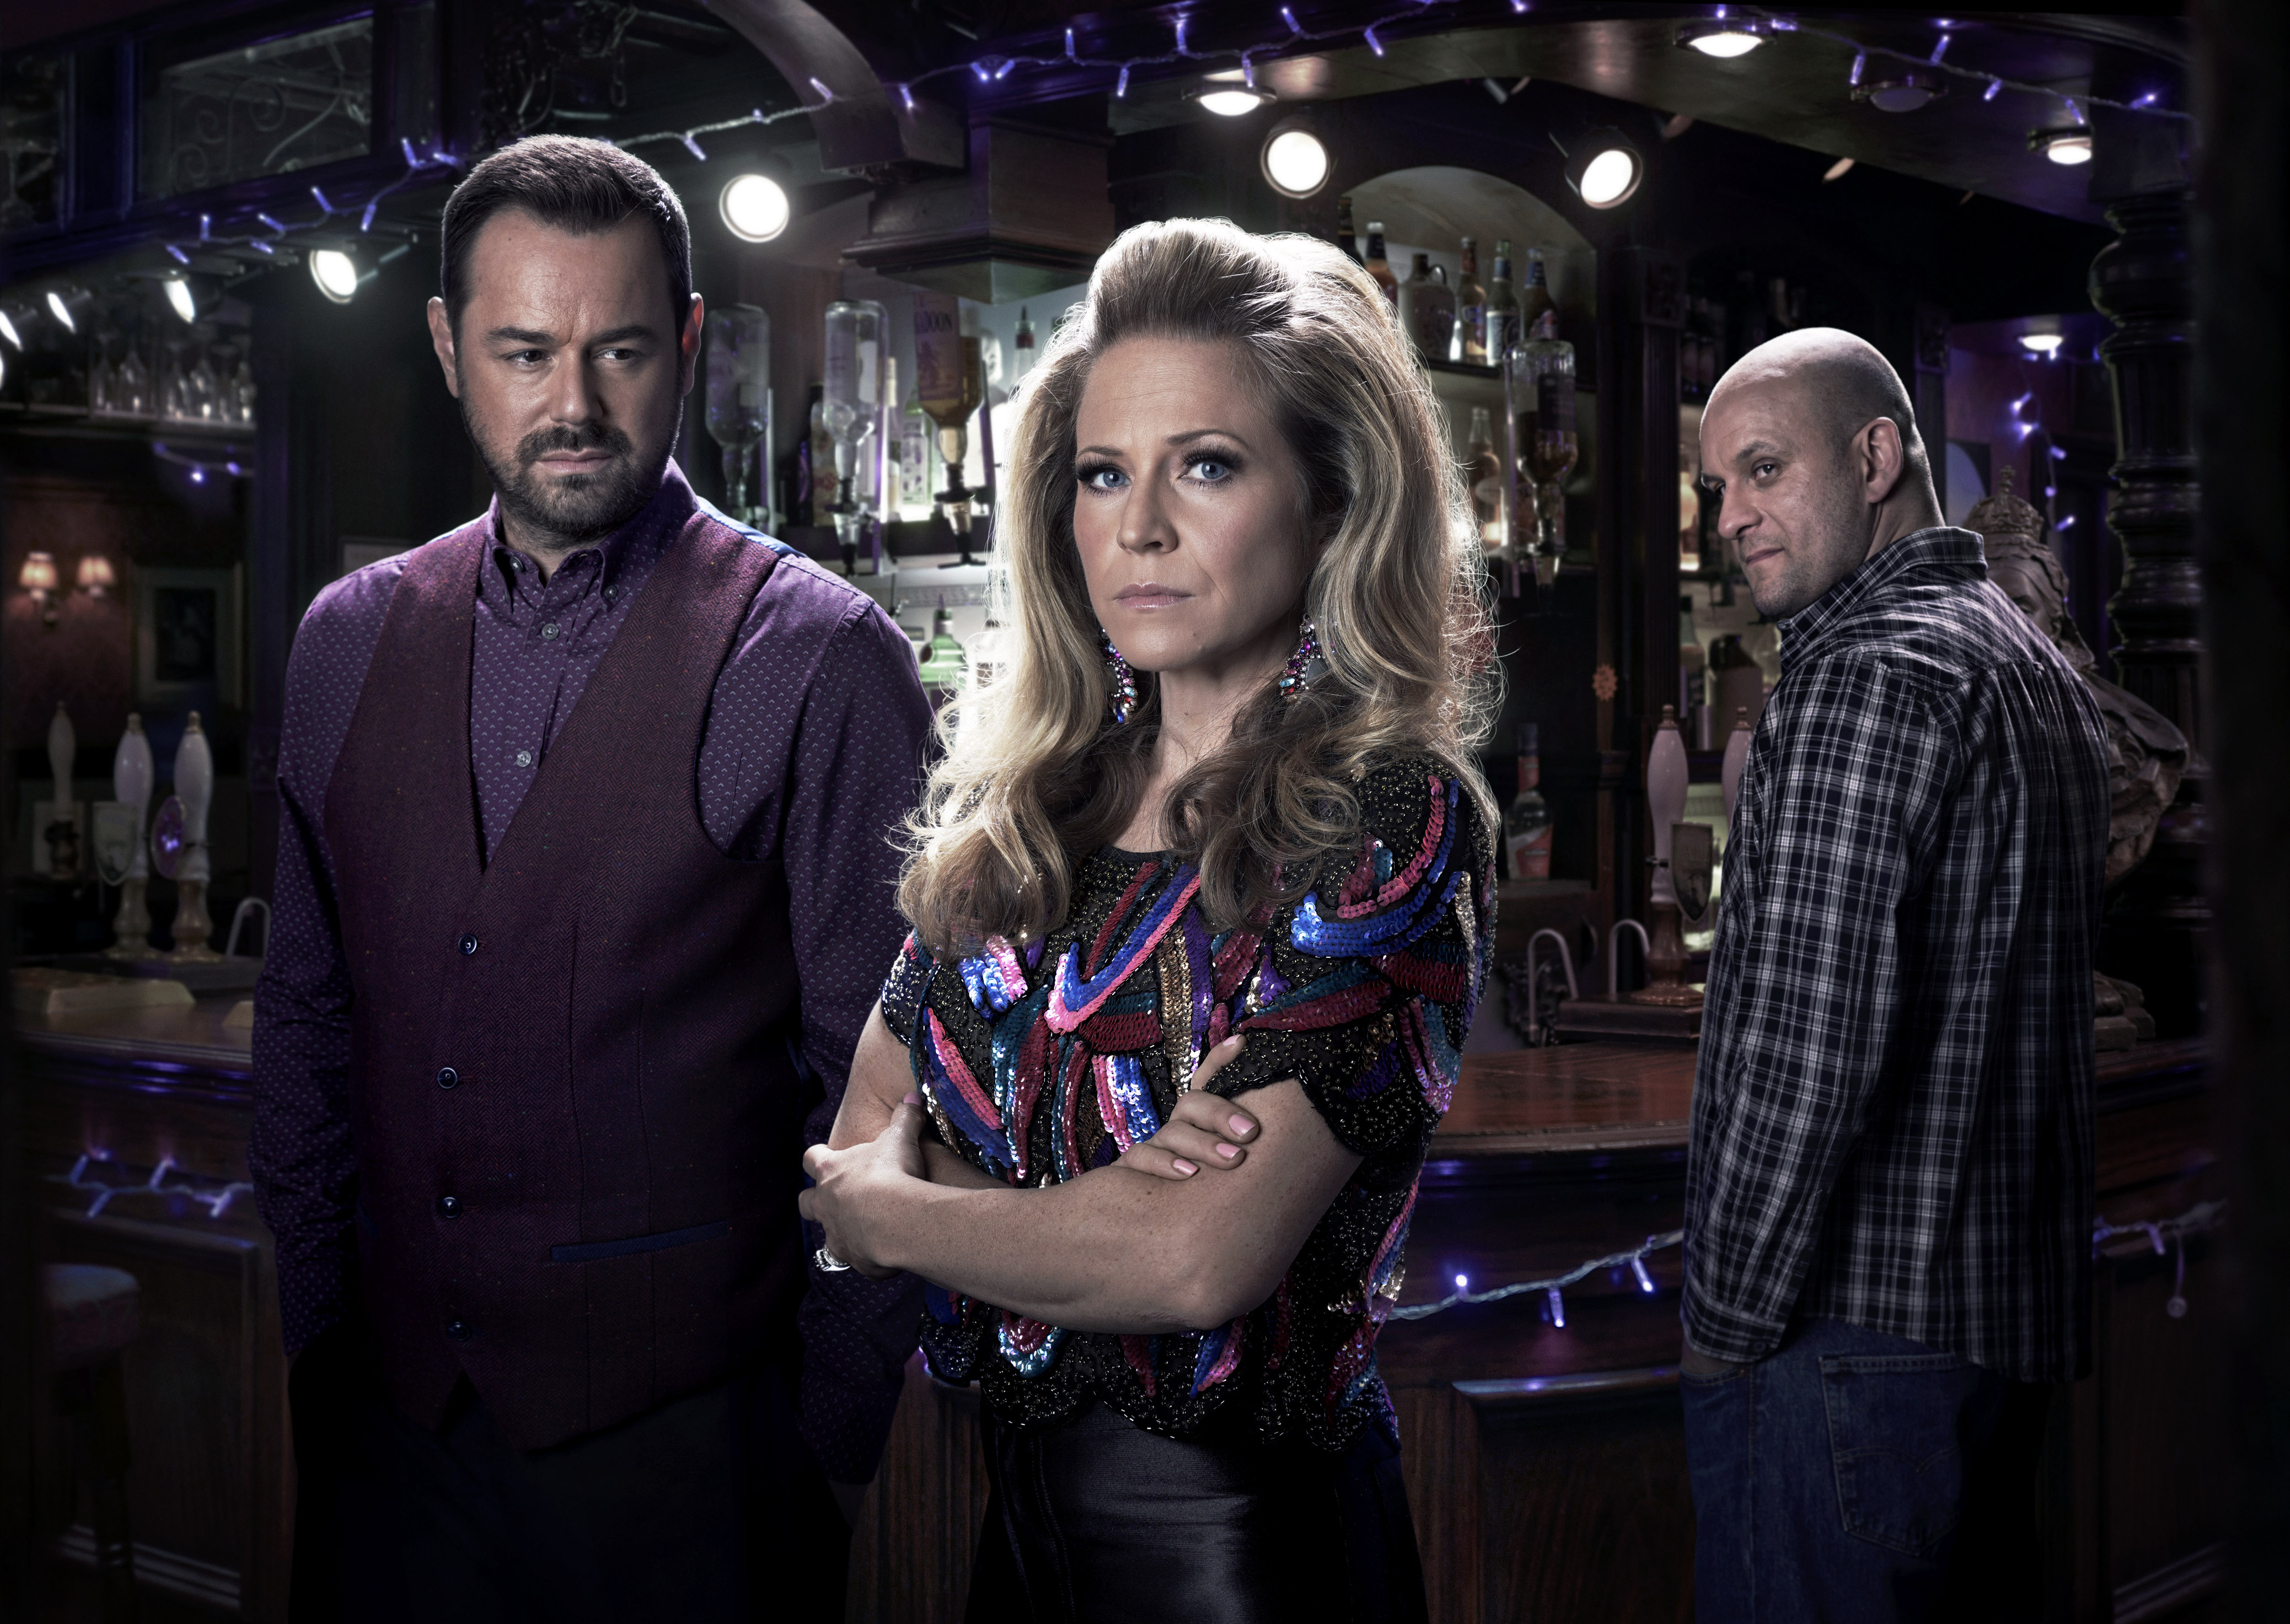 Ricky Champ, right, keeps an eye on Danny Dyer's Mick and Kellie Bright as Linda in EastEnders (BBC /Kieron McCarron)